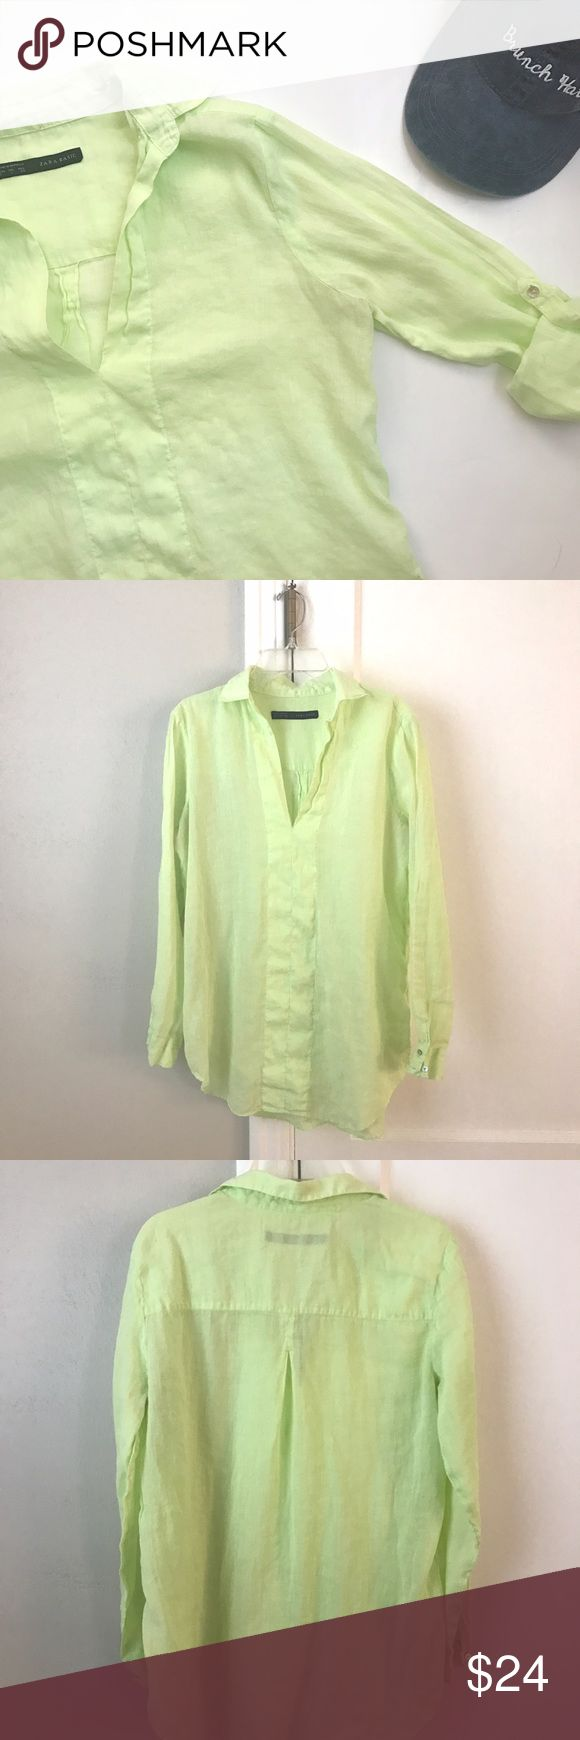 Zara | Light and Breezy Beach Tunic Beautiful collared tunic is light yellow/lime color. Perfect with white pants and wedges or as a swimsuit cover up! Thin and relaxed style featuring roll up sleeves. Size S from Zara. Slight wear shown in picture of v-neck. Other than that, excellent condition. Zara Tops Tunics